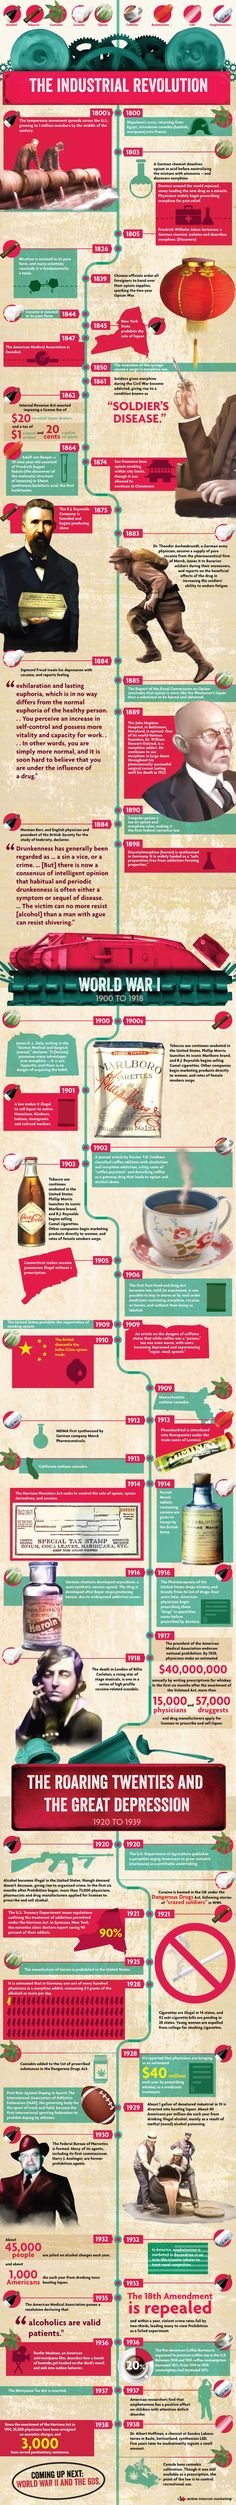 History of Addiction - The Industrial Revolution Infographic - Ap World History, European History, Ancient History, American History, History Teachers, History Class, Teaching History, History Timeline, History Facts